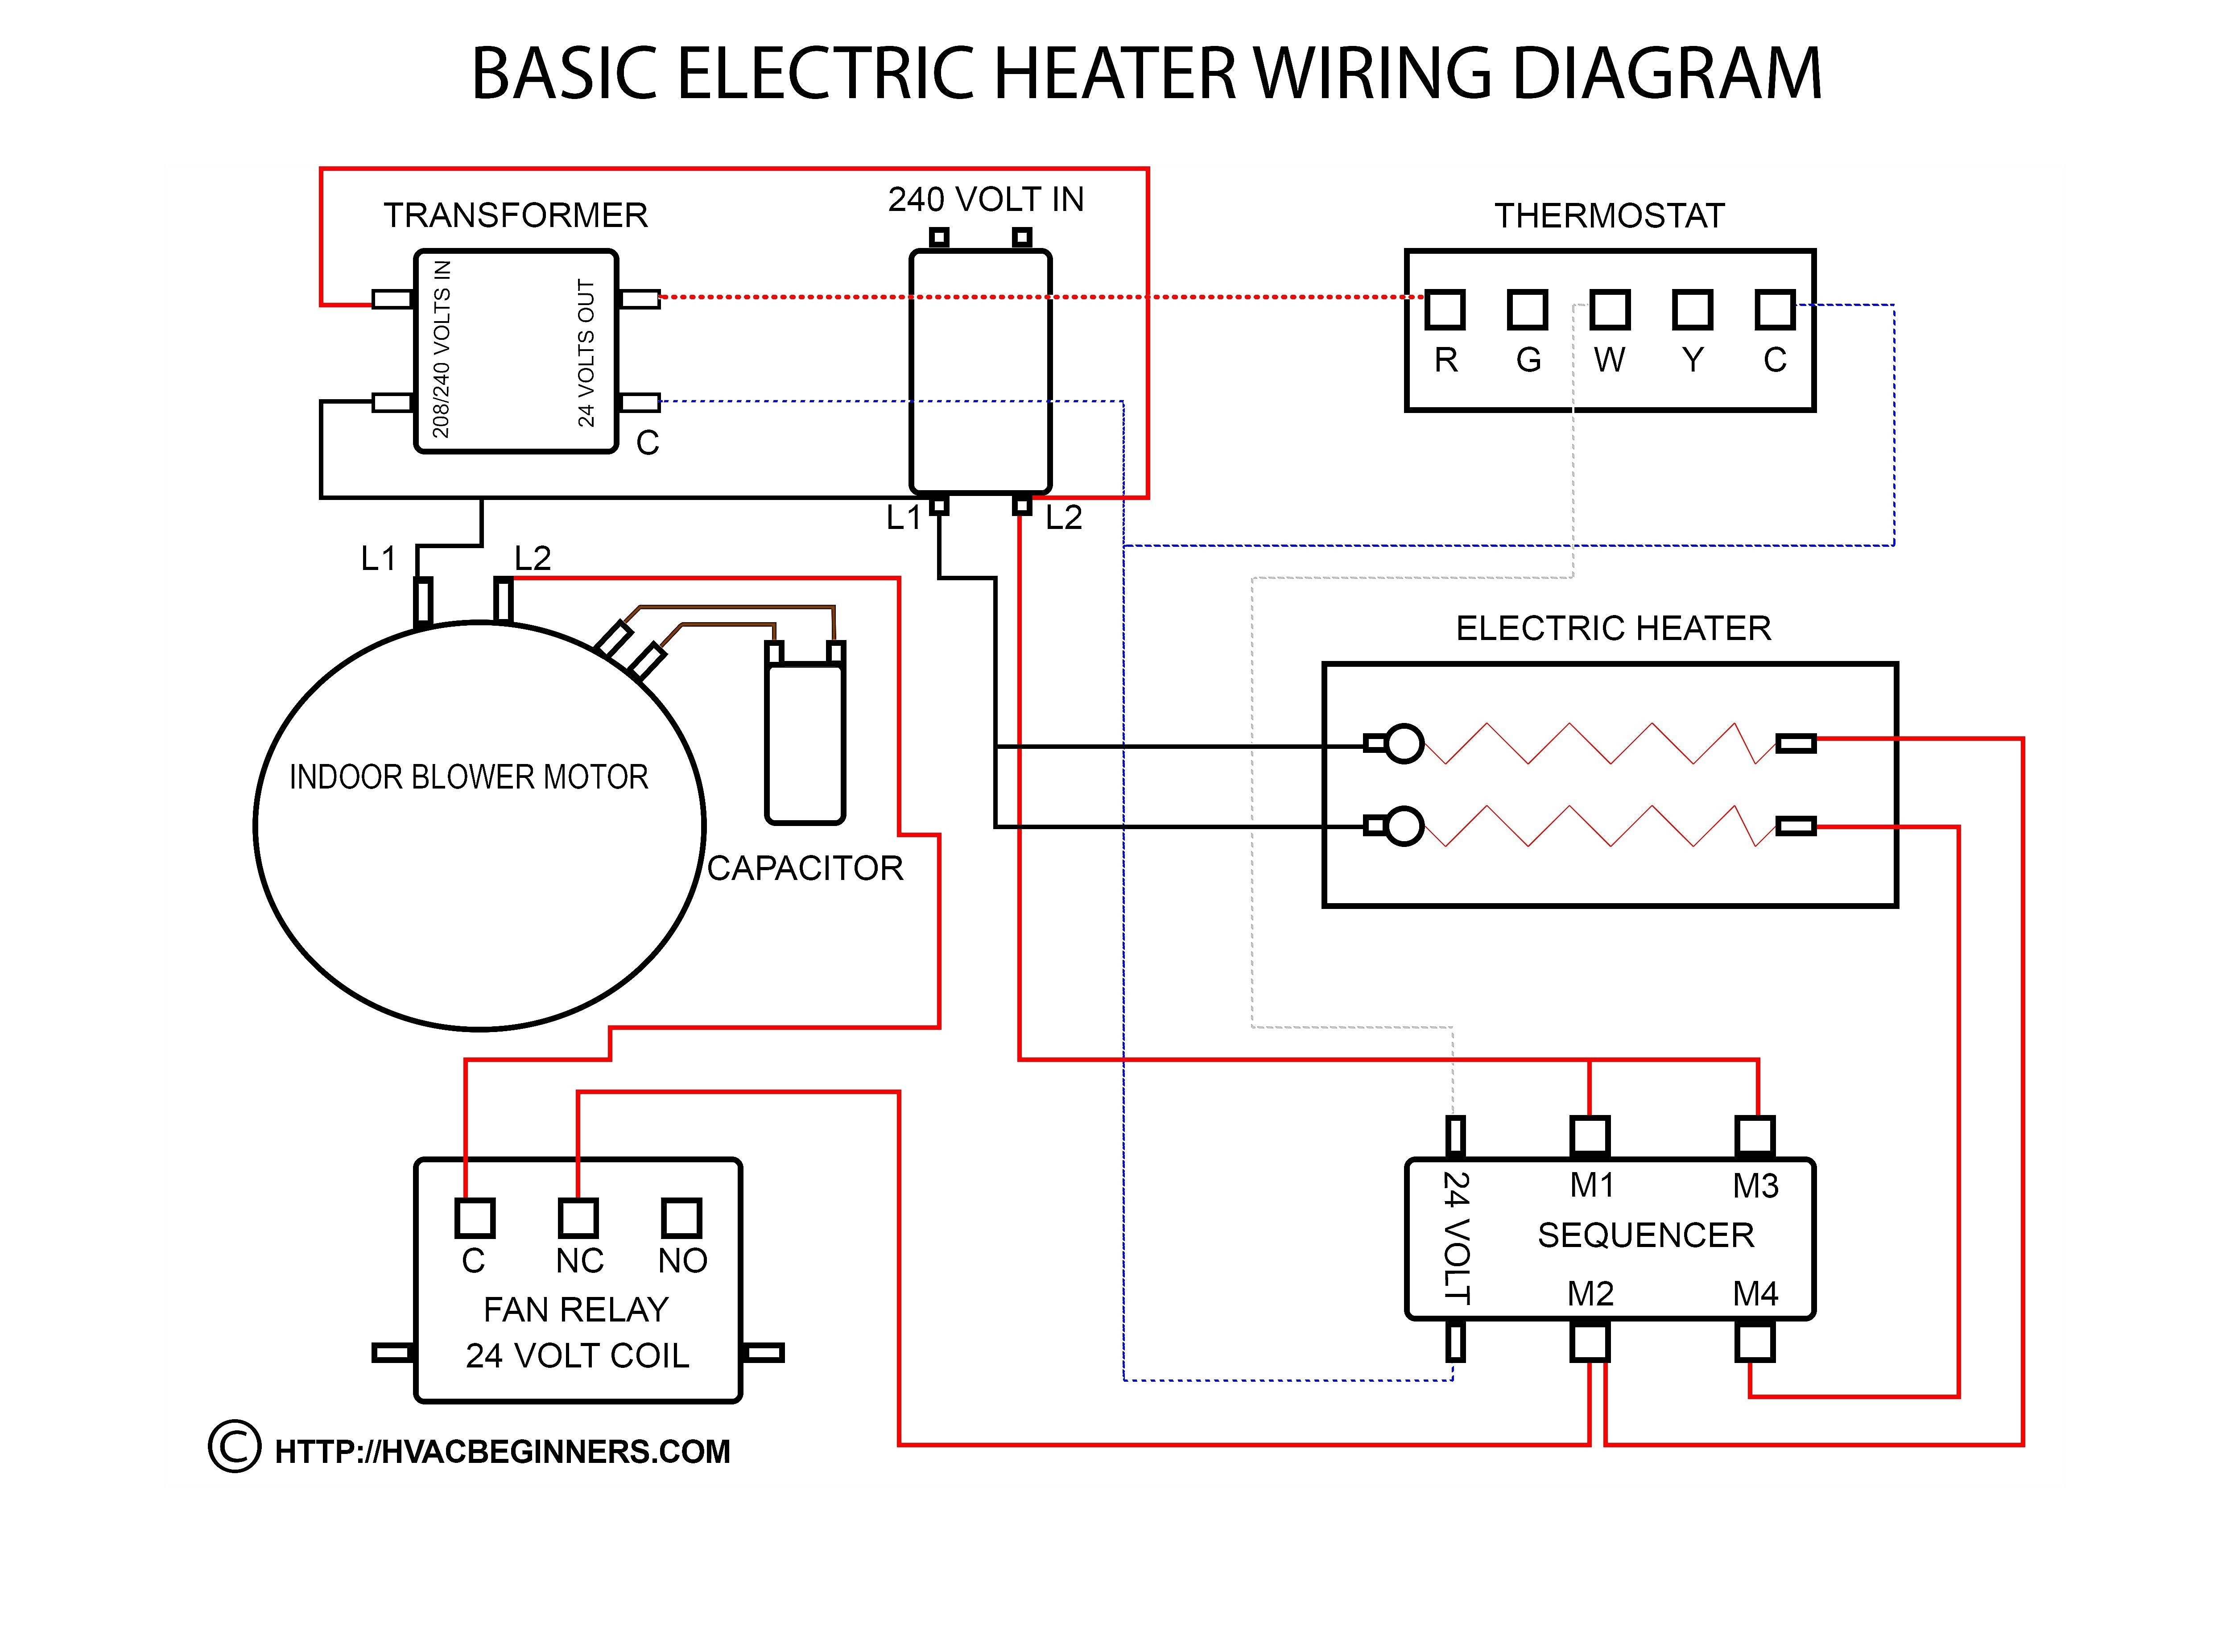 sukup t242 wiring diagram 220v hot water heater wiring diagram | free wiring diagram